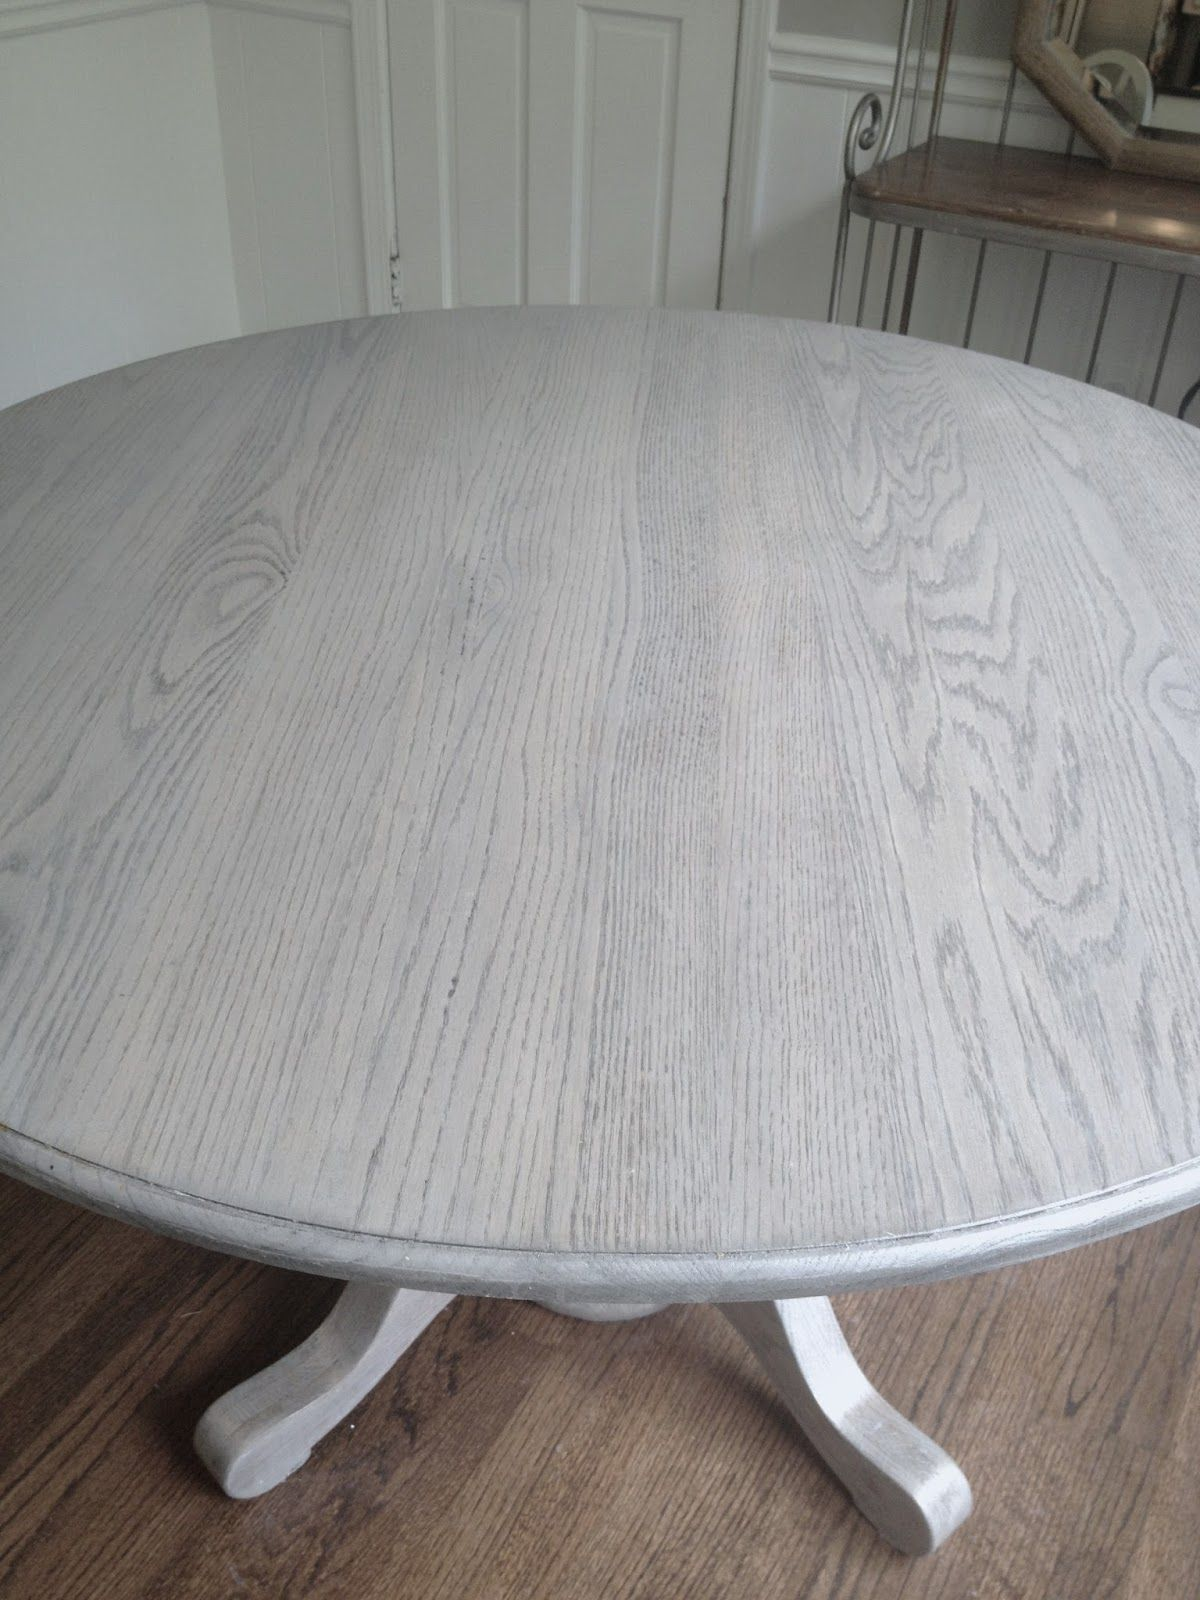 refinishing kitchen table Refinishing dining table gray Long and Found DIY Kitchen Table Refresh